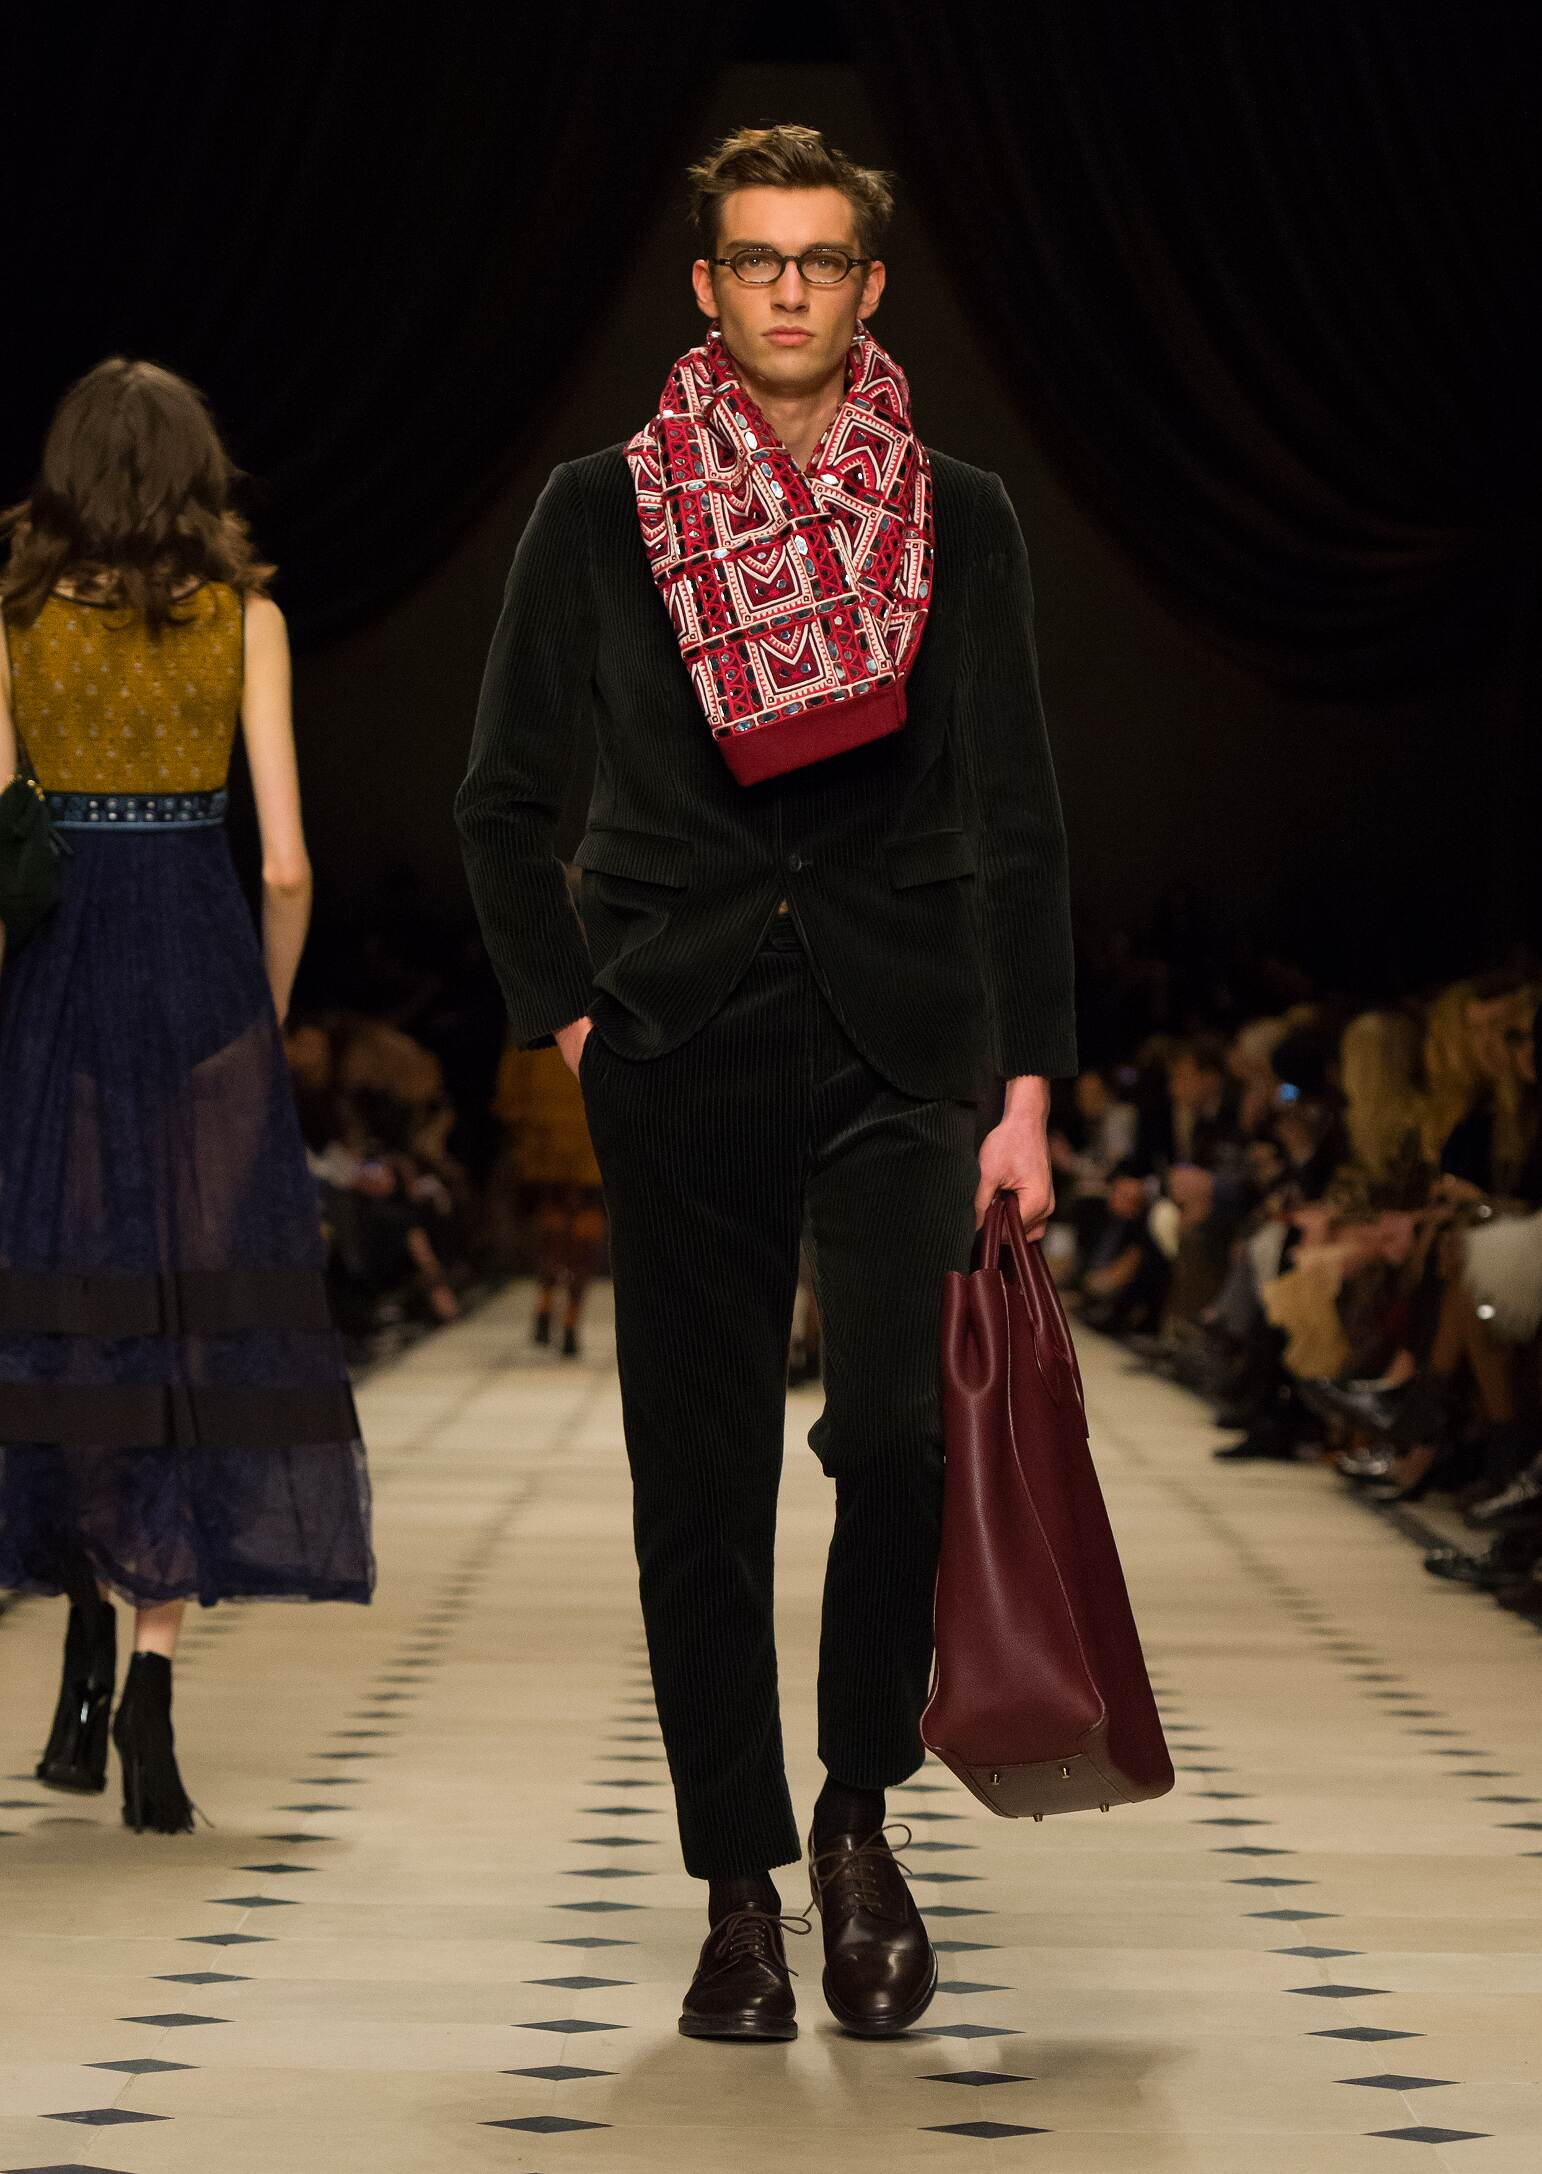 Fashion Show FW 2015 2016 Burberry Prorsum Menswear